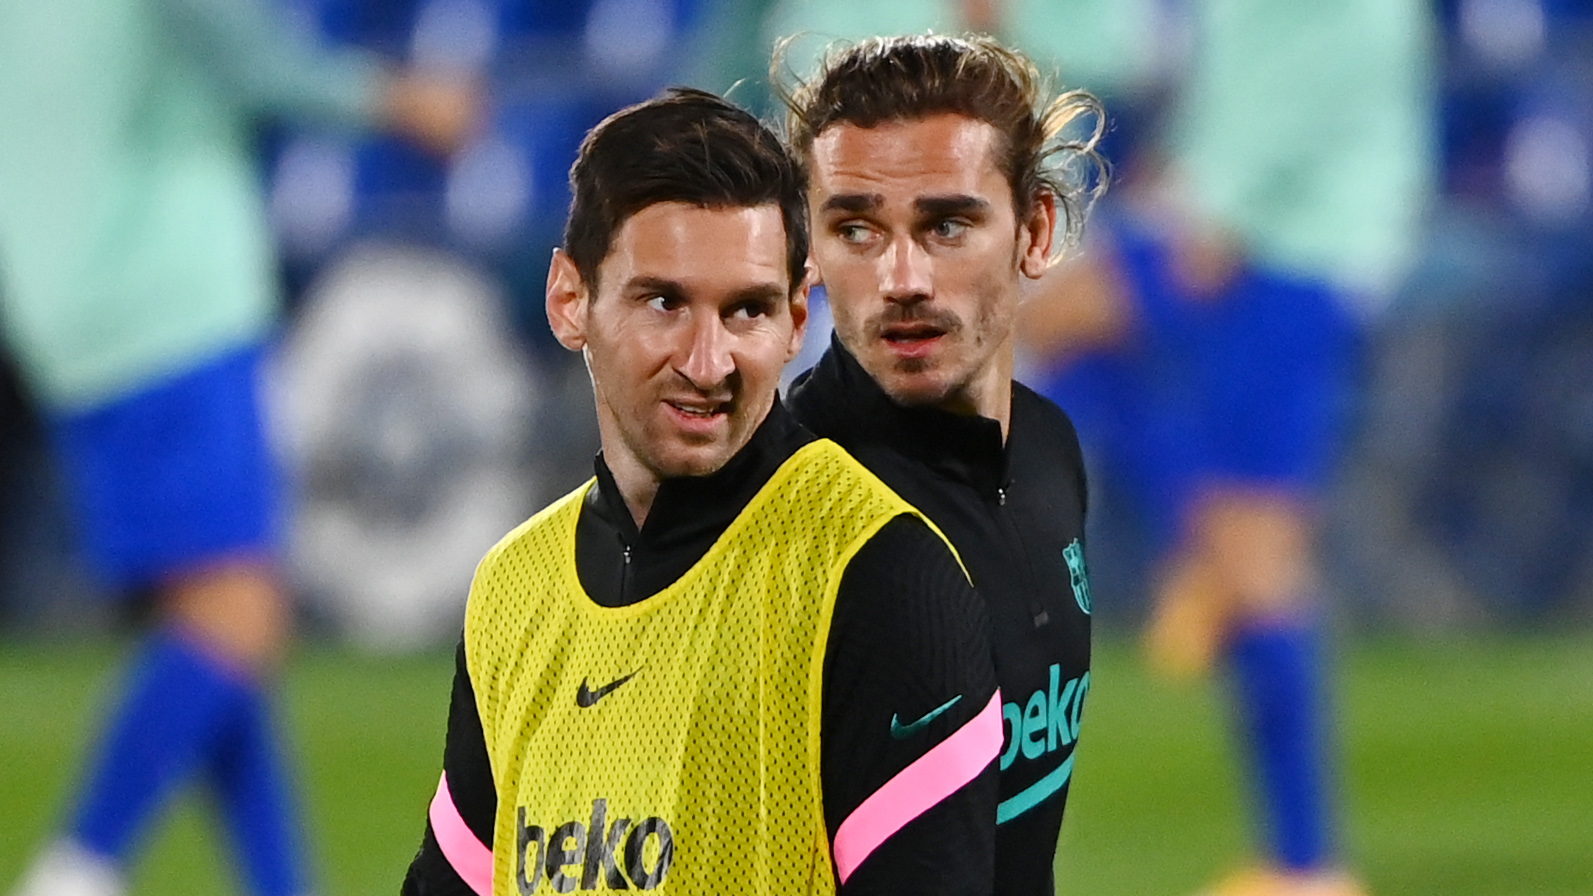 Griezmann's former adviser backtracks on Messi comments with open letter to Barcelona fans